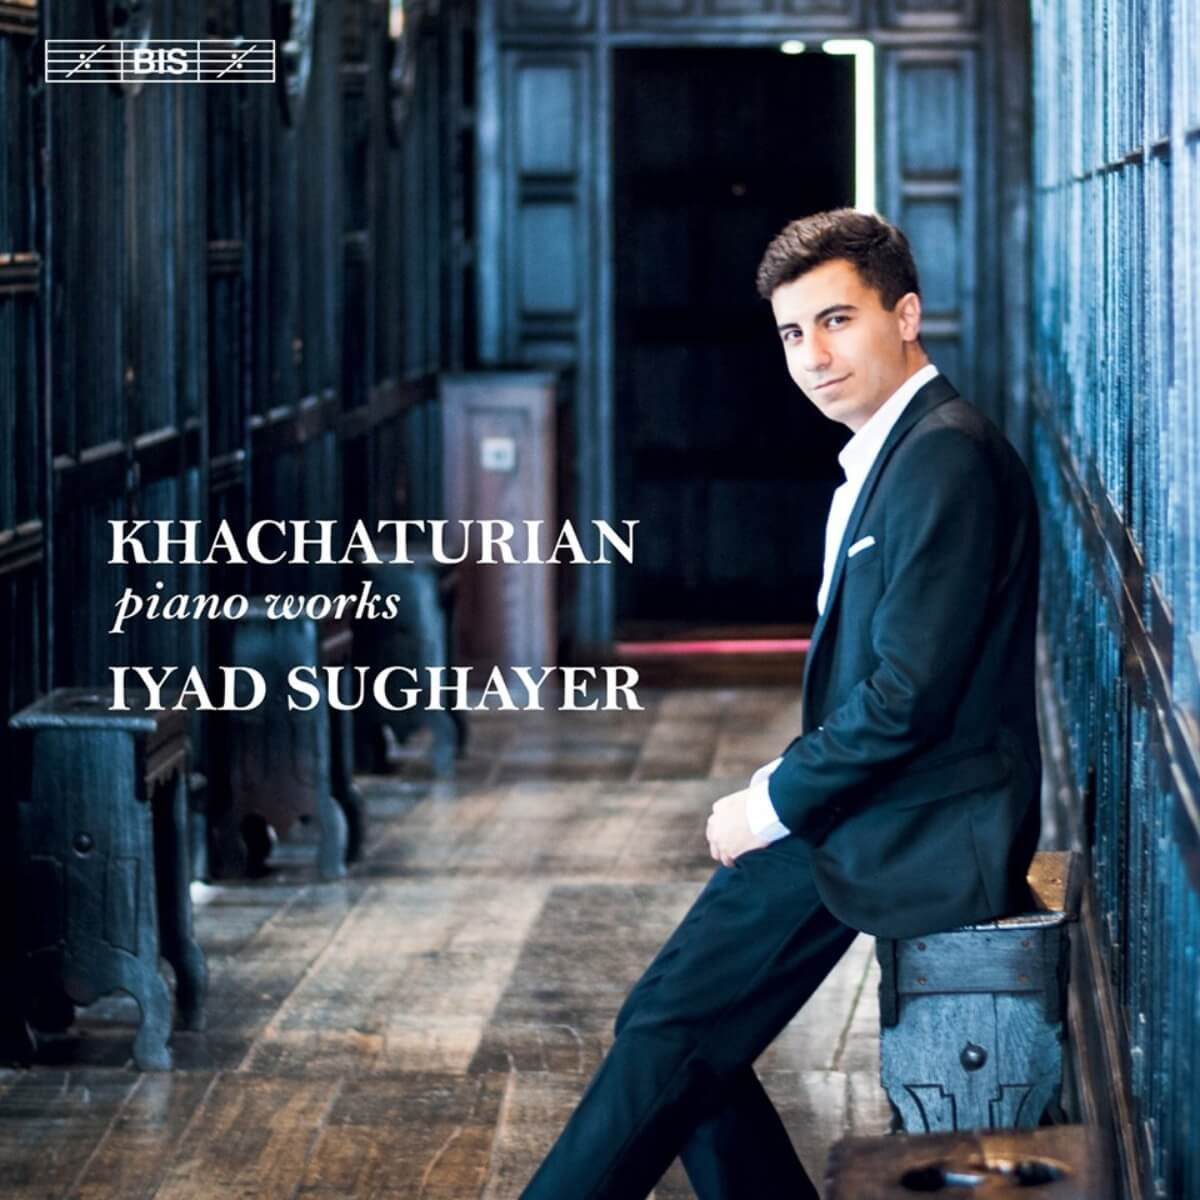 couverture du disque d'Iyad Sughayer, Khatchaturian : Piano Works